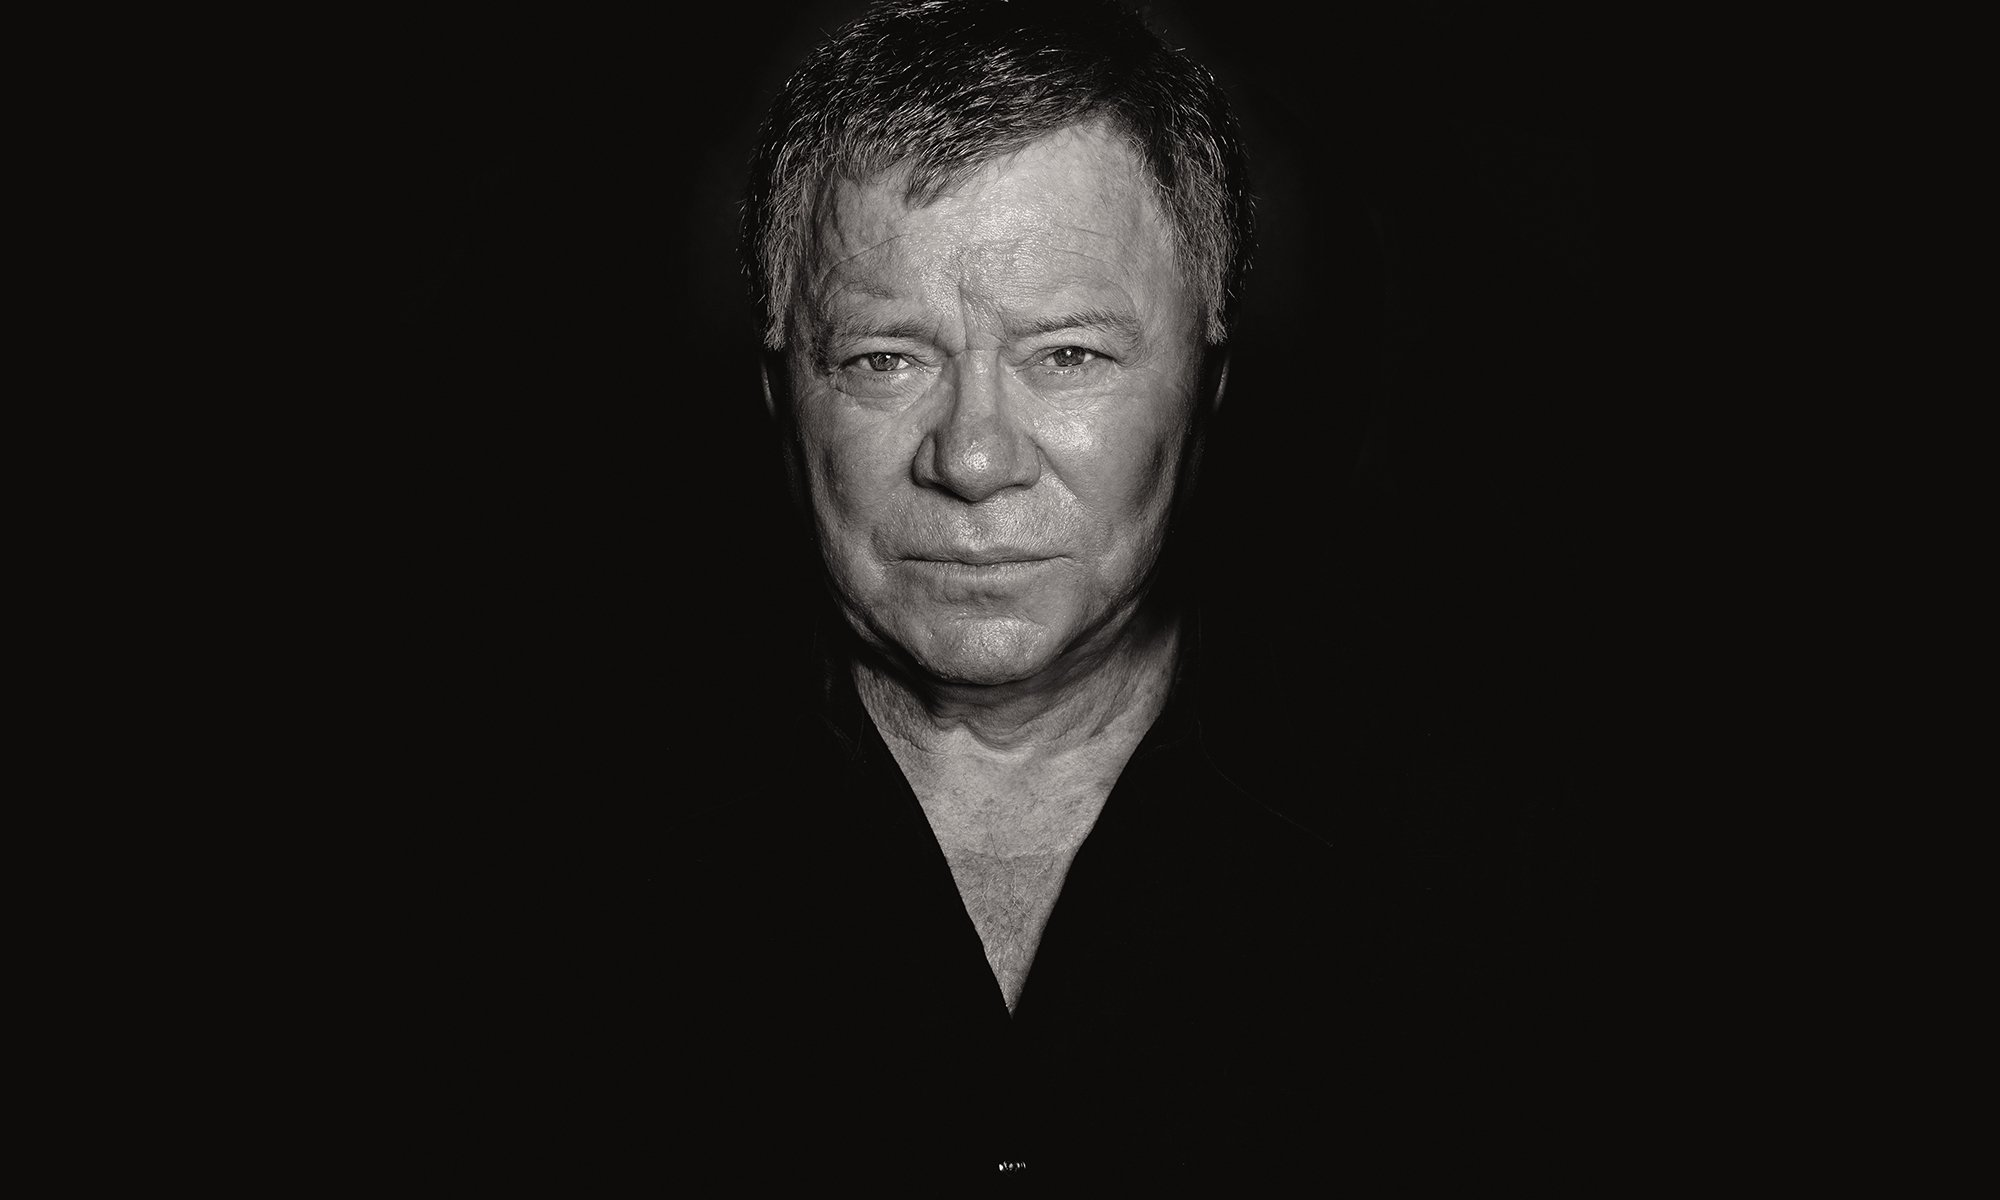 William Shatner Cisgender Pure Film Creative